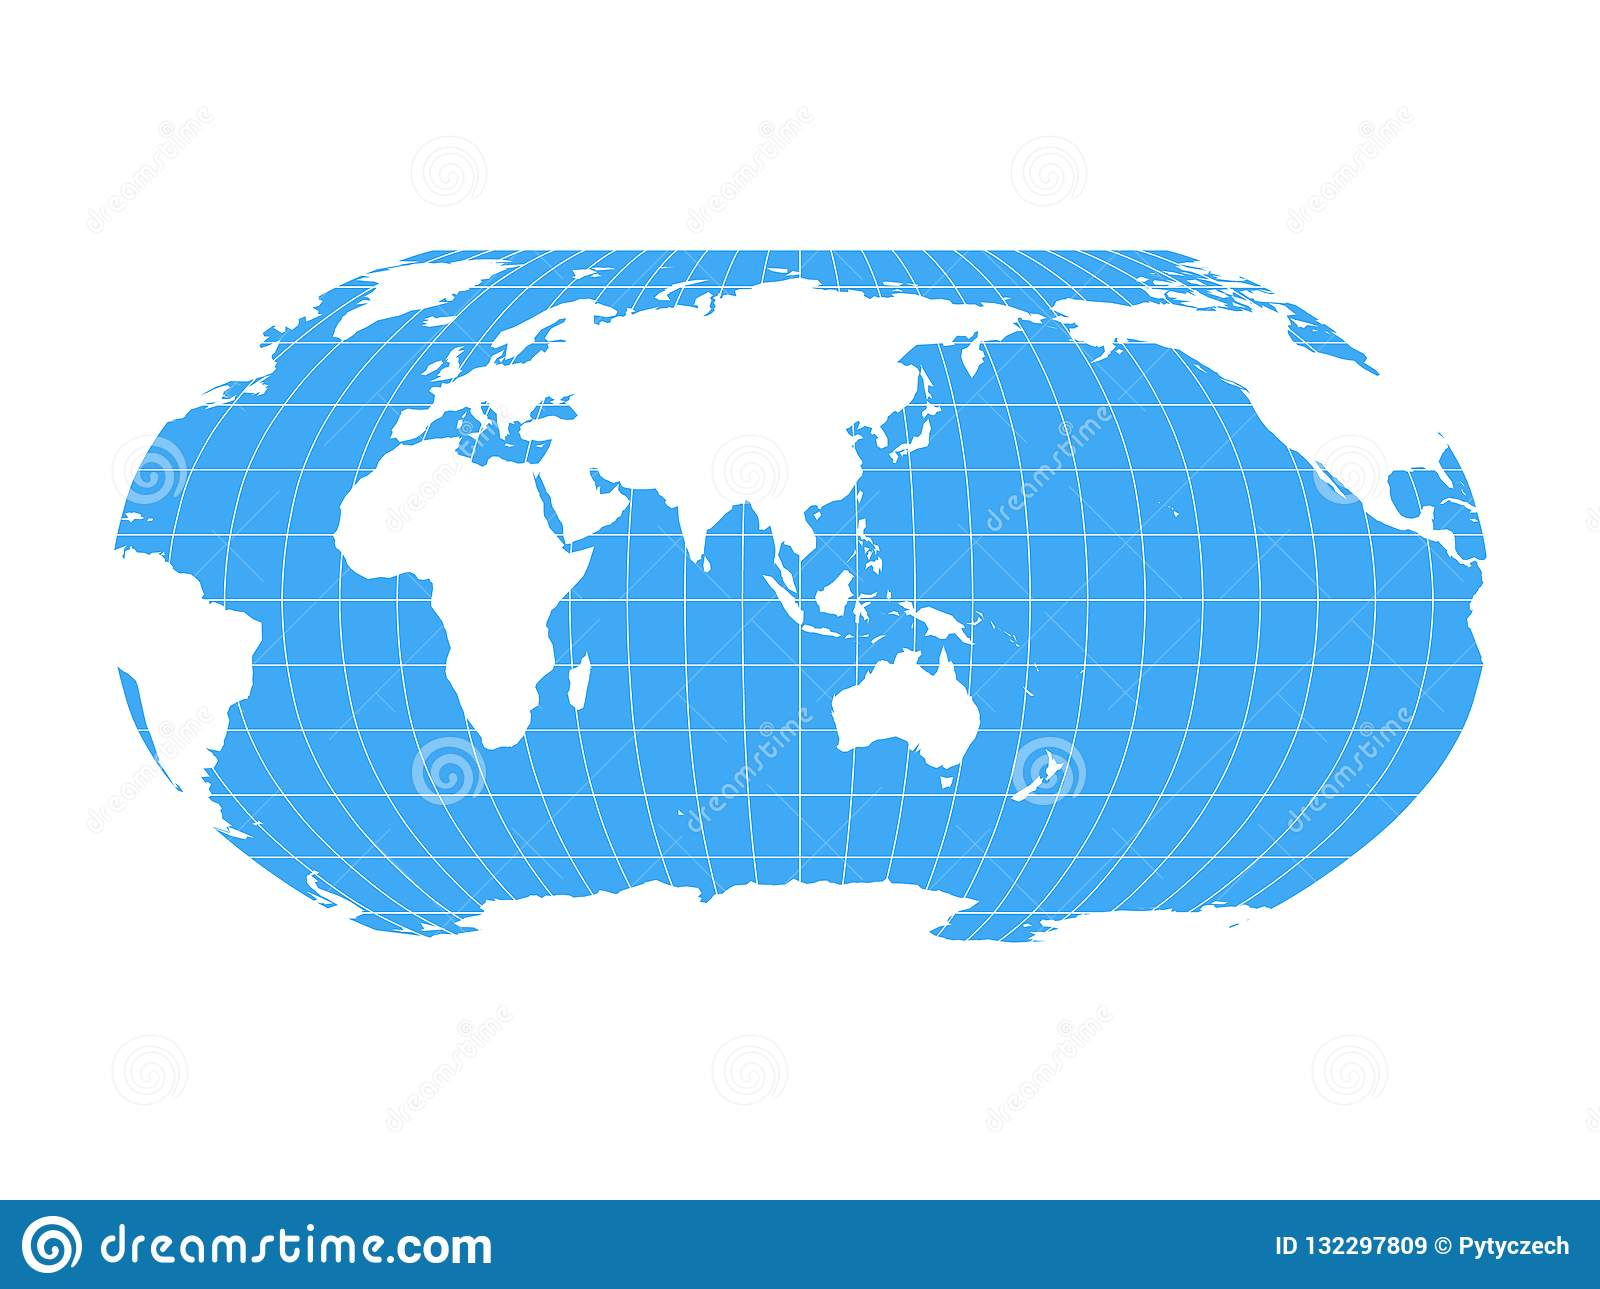 Australia Land Map.World Map In Robinson Projection With Meridians And Parallels Grid